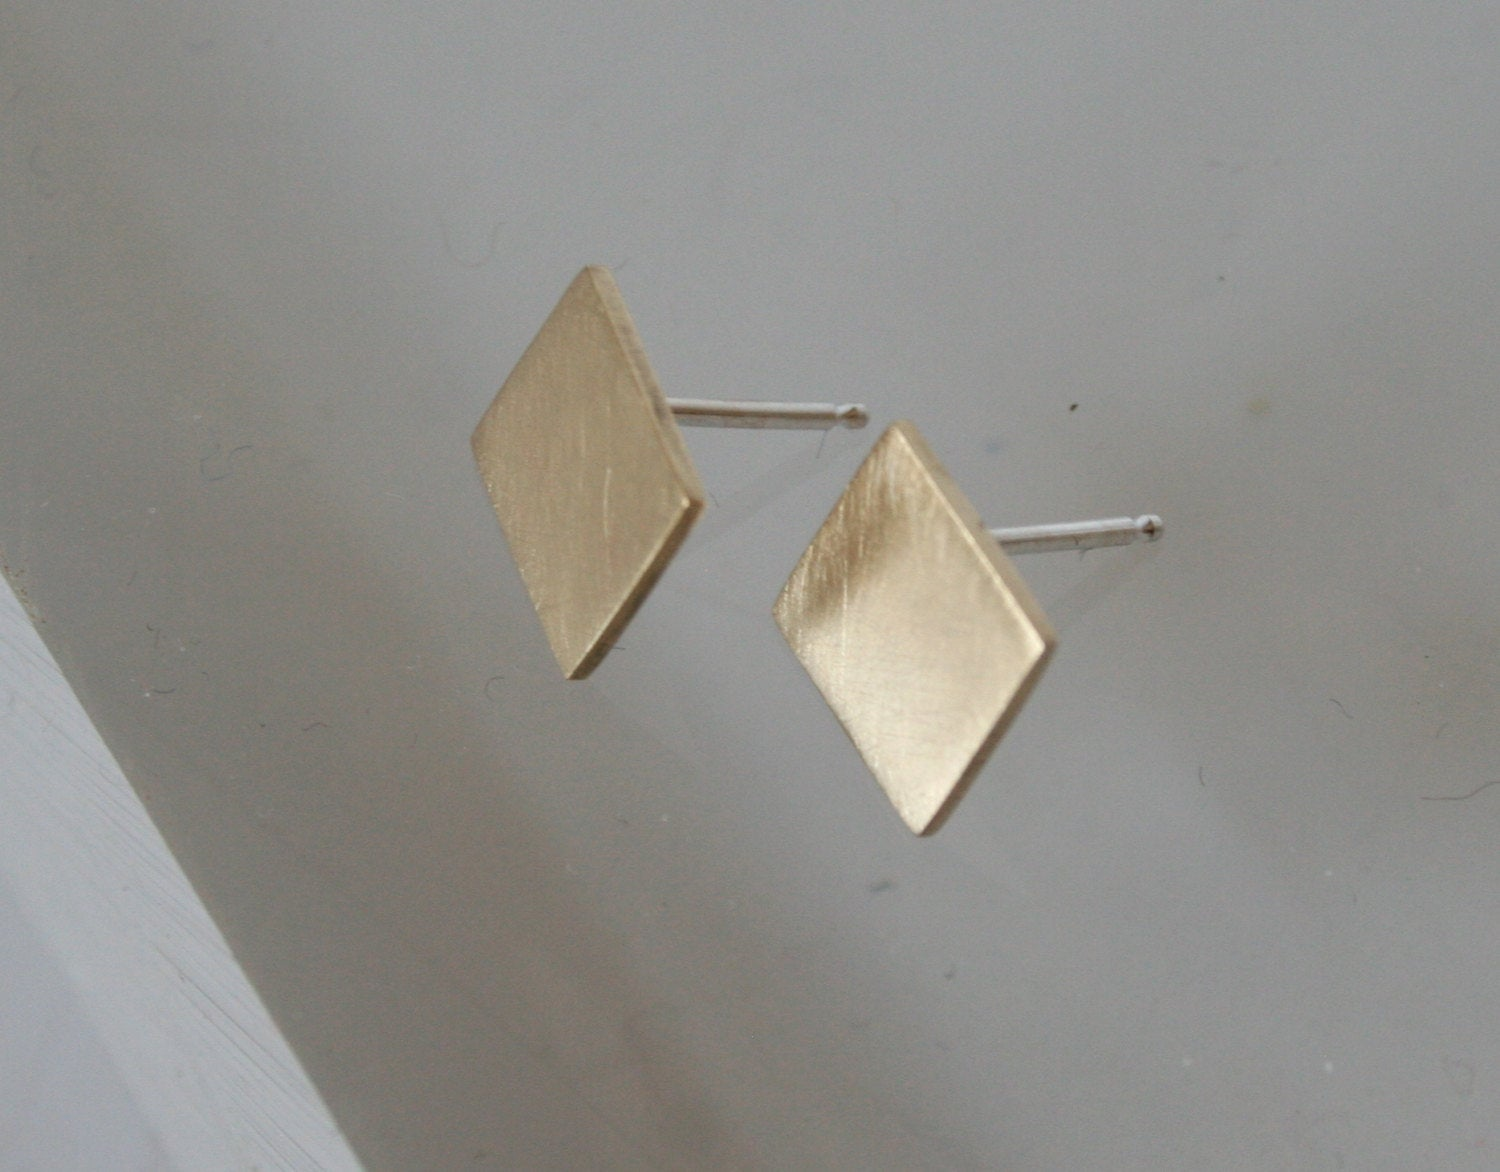 Brass Diamond Shape Stud Earrings, Square Earrings, Gold Stud Earrings, Geometric Earrings, Geometric Jewelry, Square Earrings